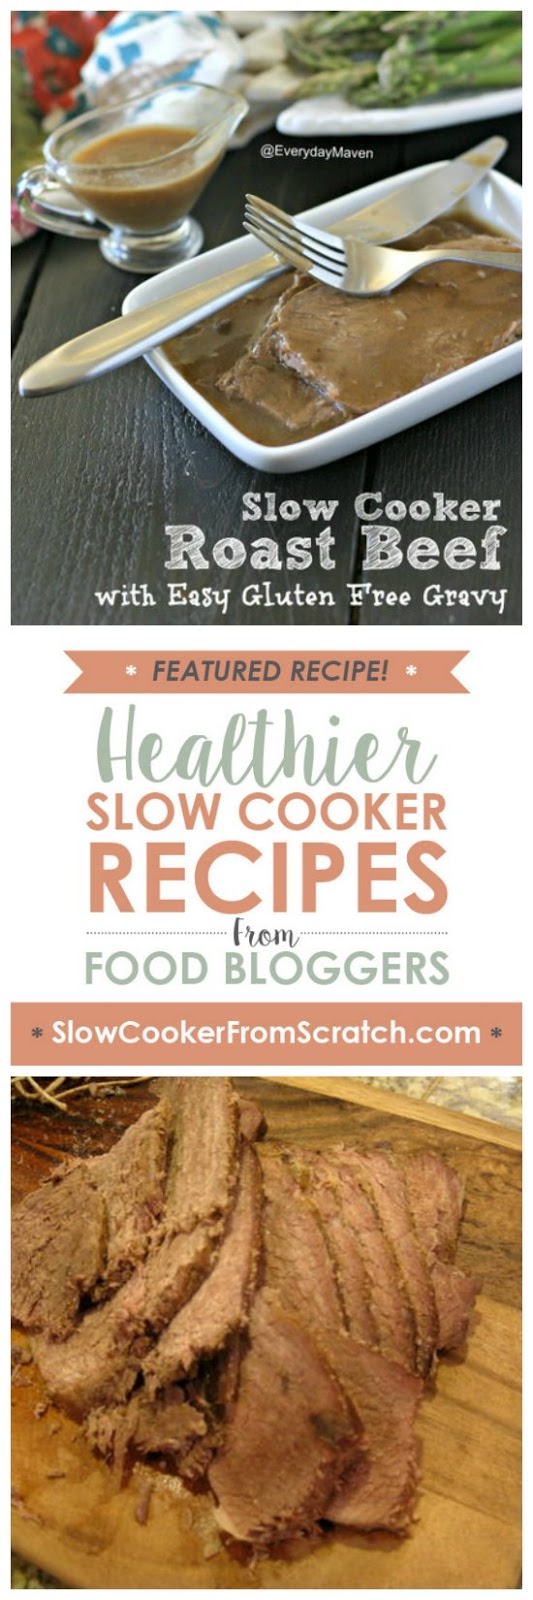 Slow Cooker Roast Beef with Easy Gluten-Free Gravy from Everyday Maven featured on SlowCookerFromScratch.com